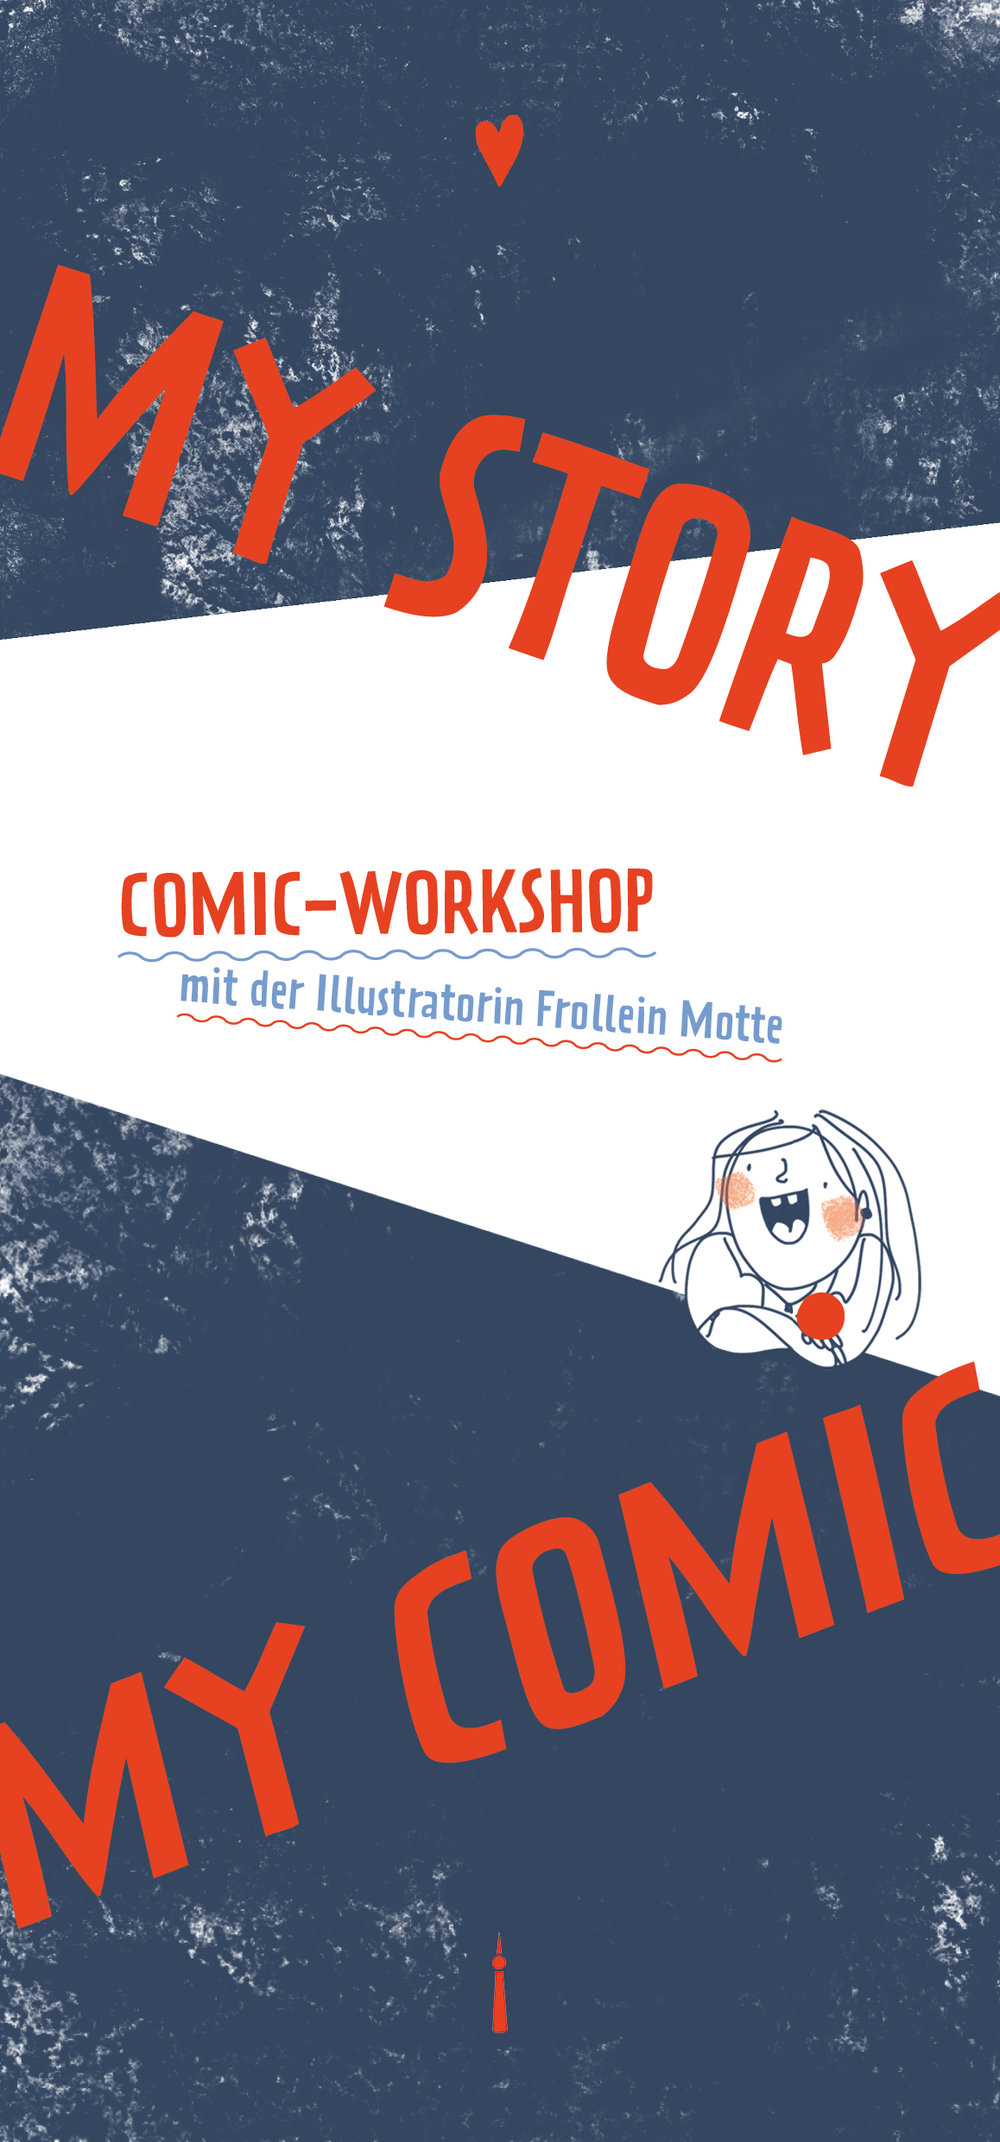 WS_werbung_comic-workshop_mystory.jpg